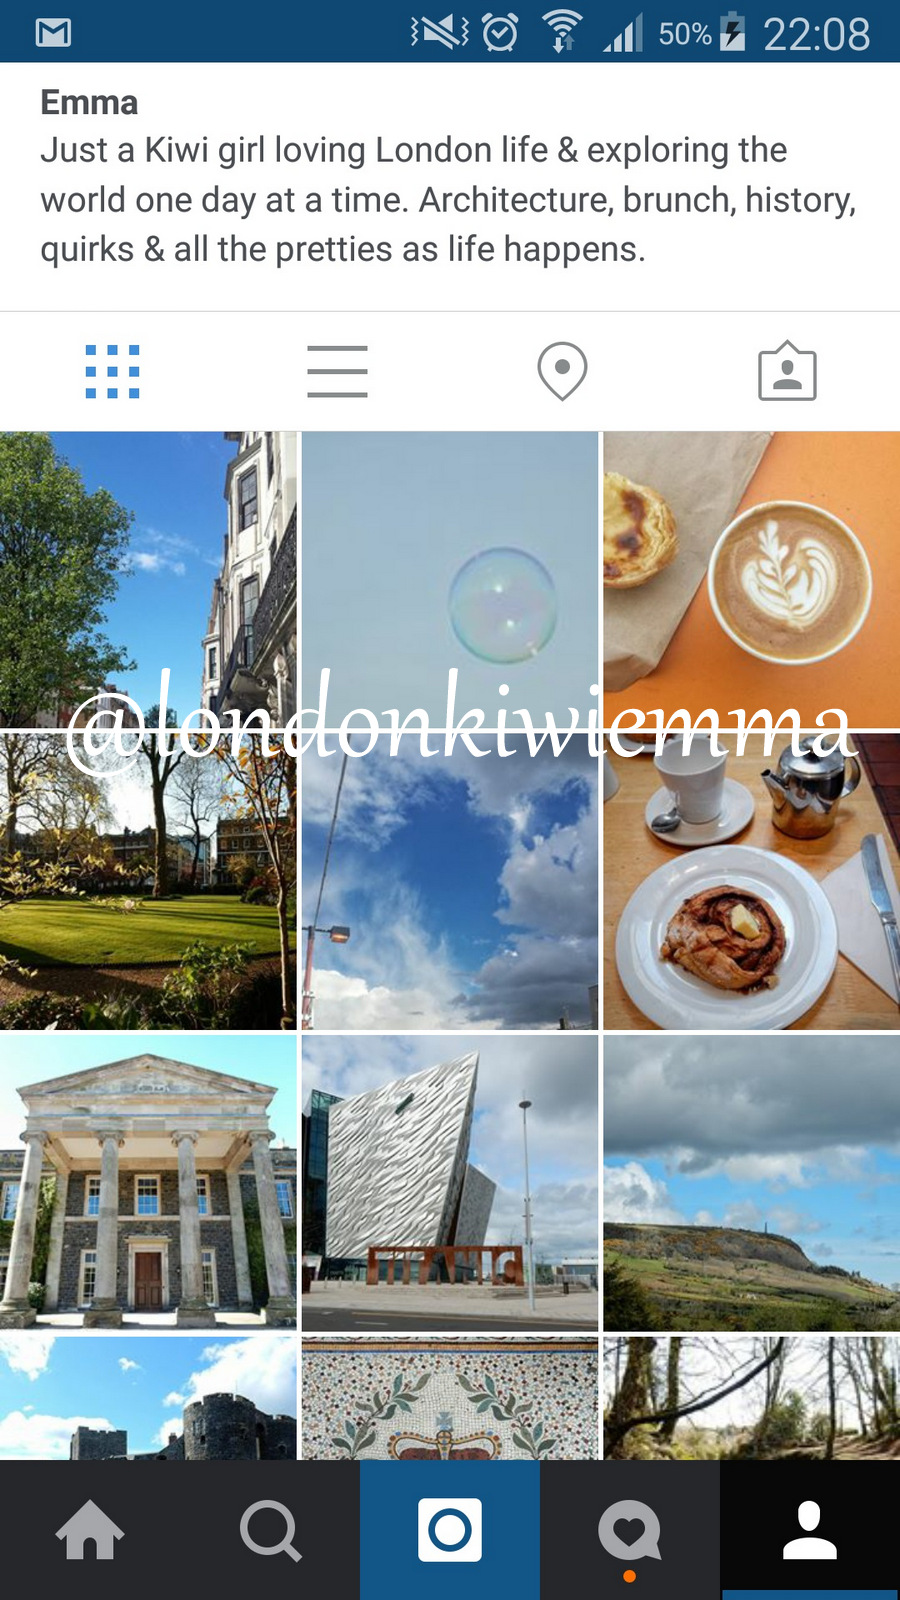 Instagram @londonkiwiemma Adventures of a London Kiwi